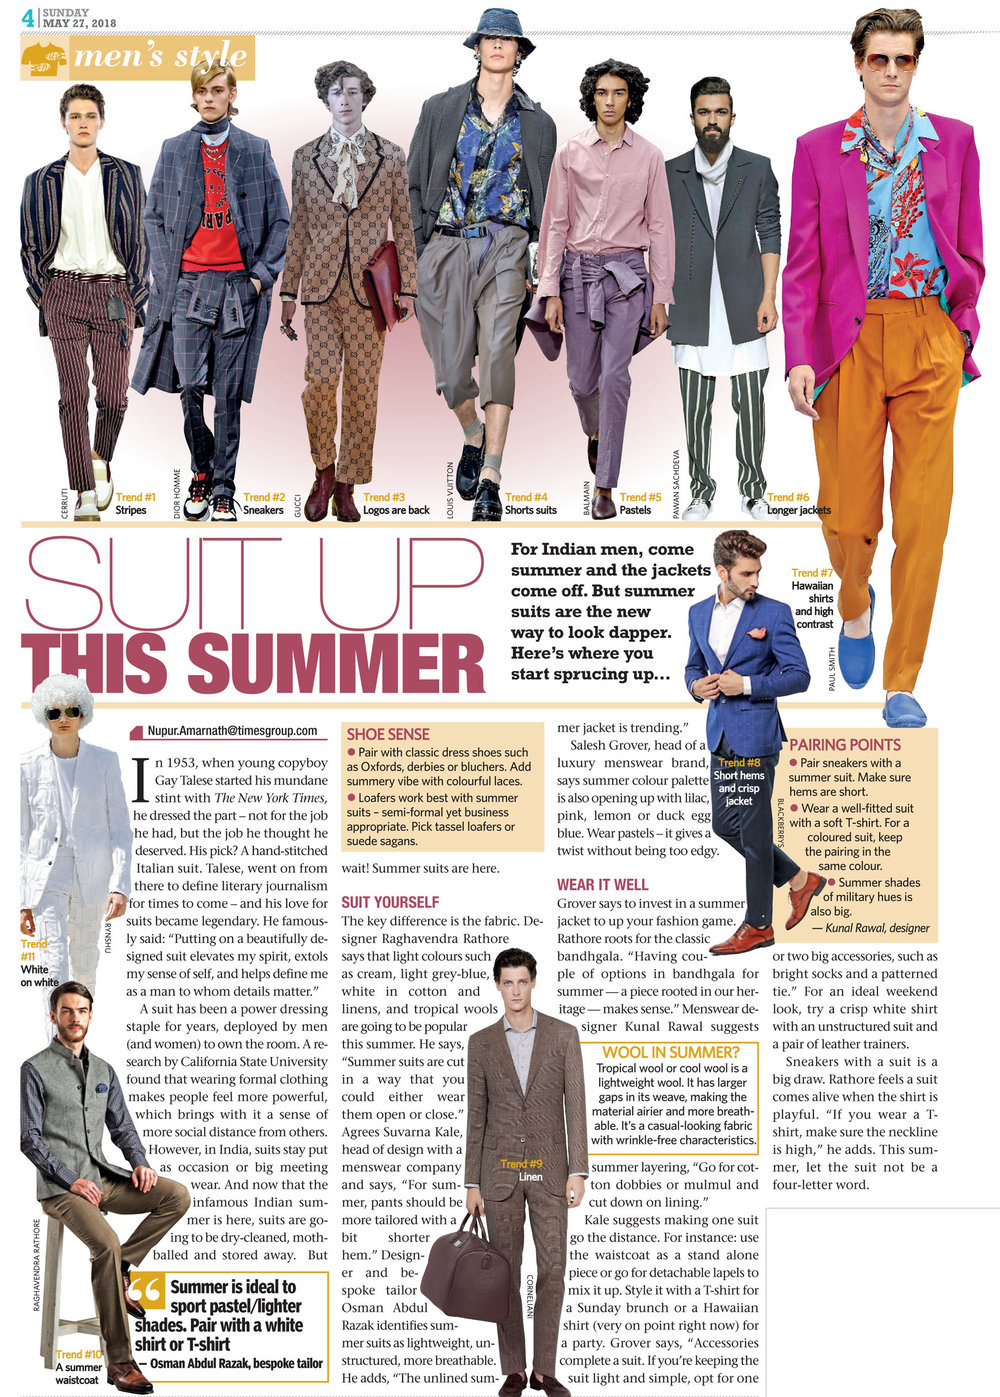 Suit up this summer (May 27, 2018).jpg